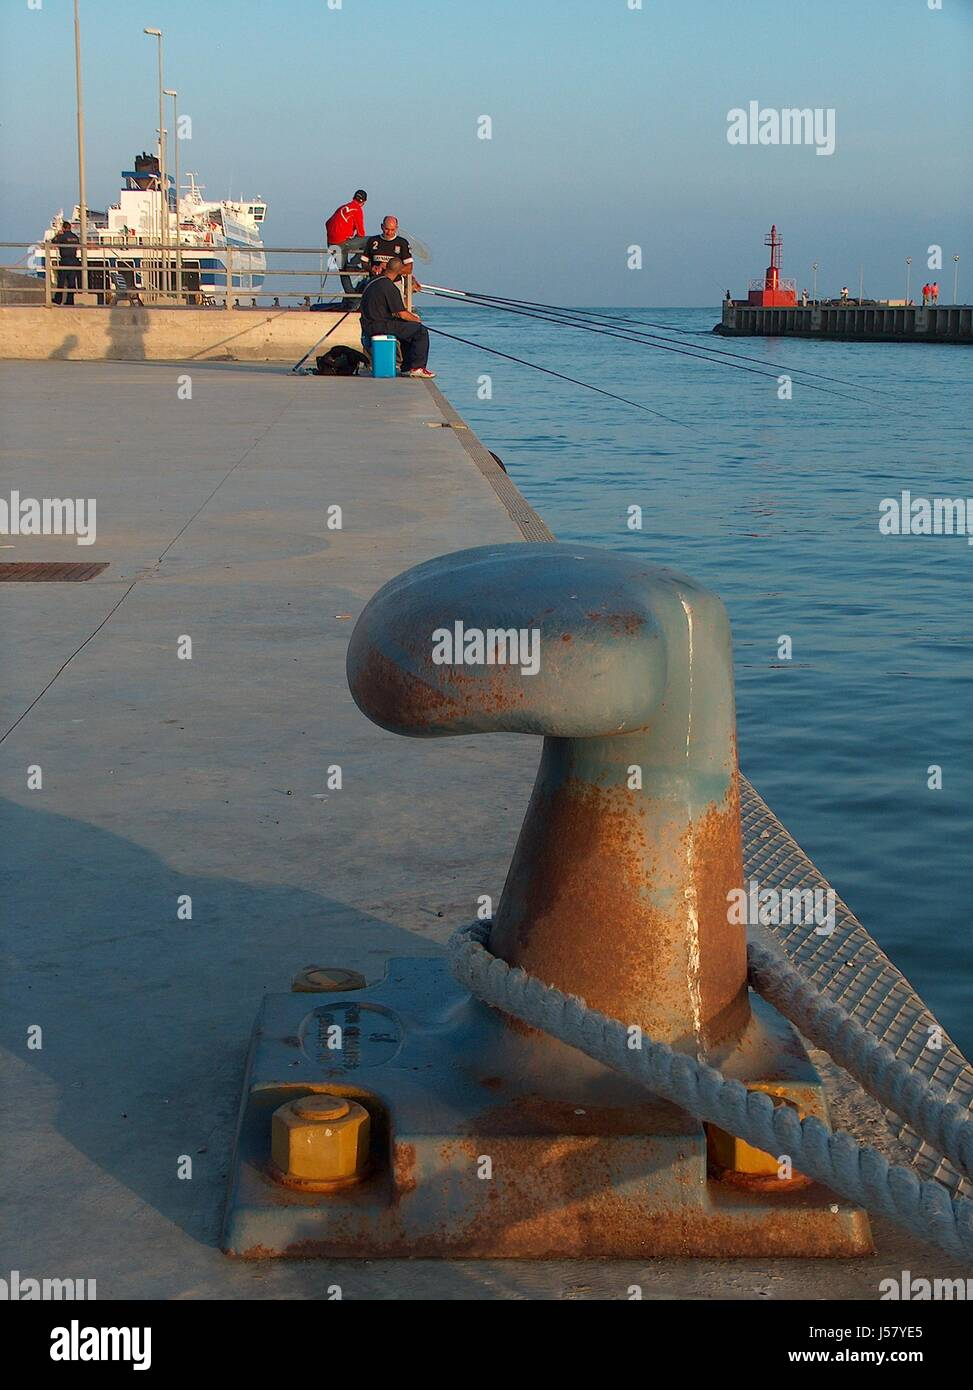 seafaring,fish,harbor,wall,harbours,angler,rope,water,kaimauer,faehre - Stock Image